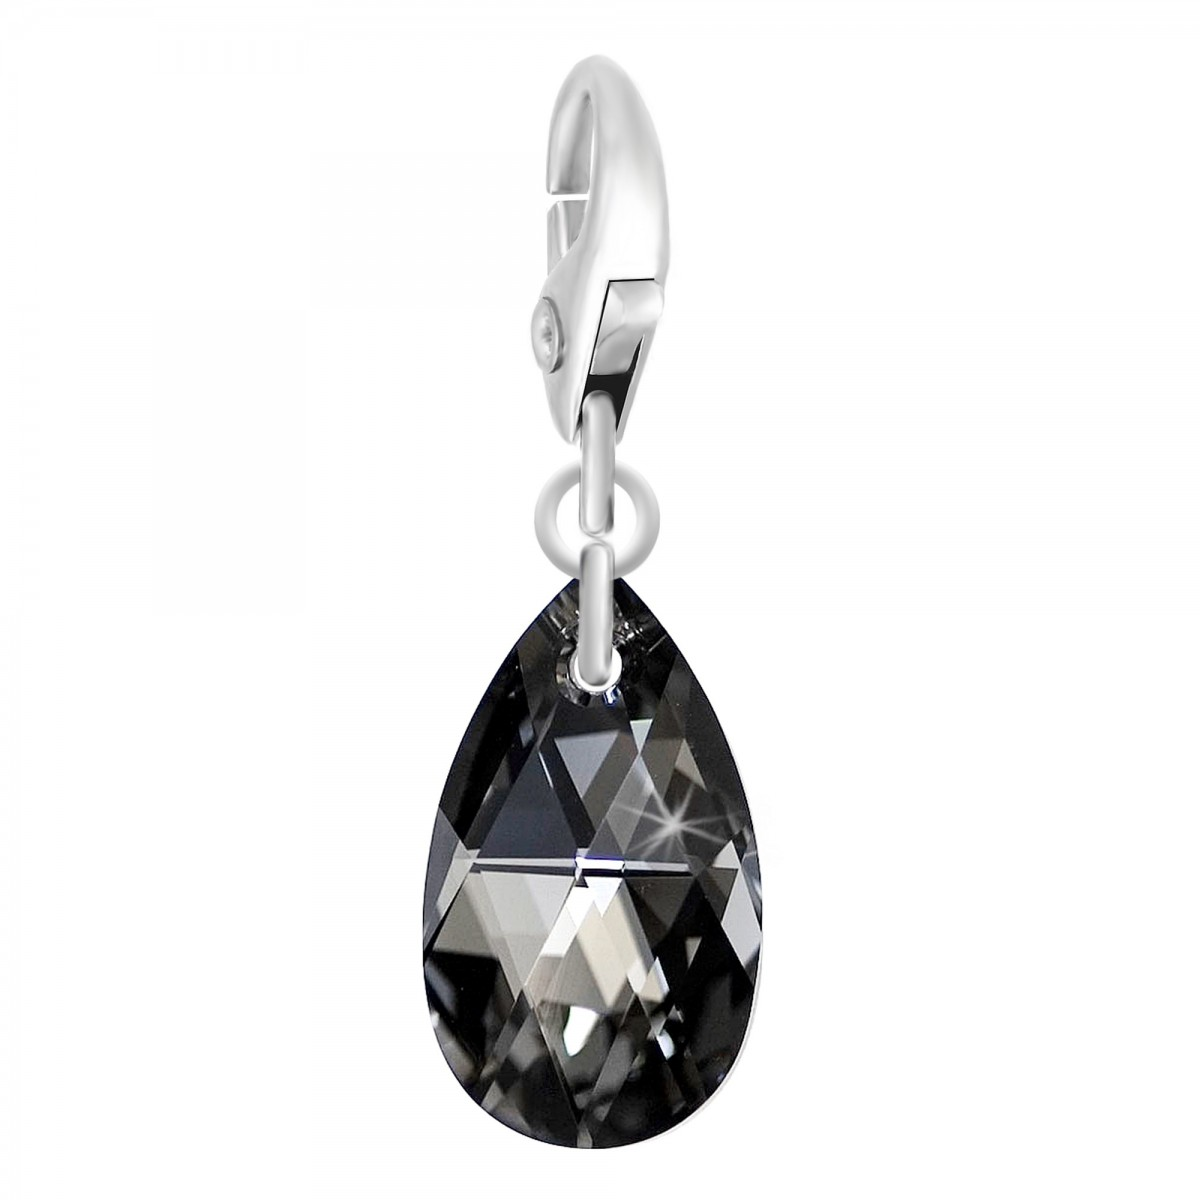 Charm goutte noire So Charm made with Crystal from Swarovski